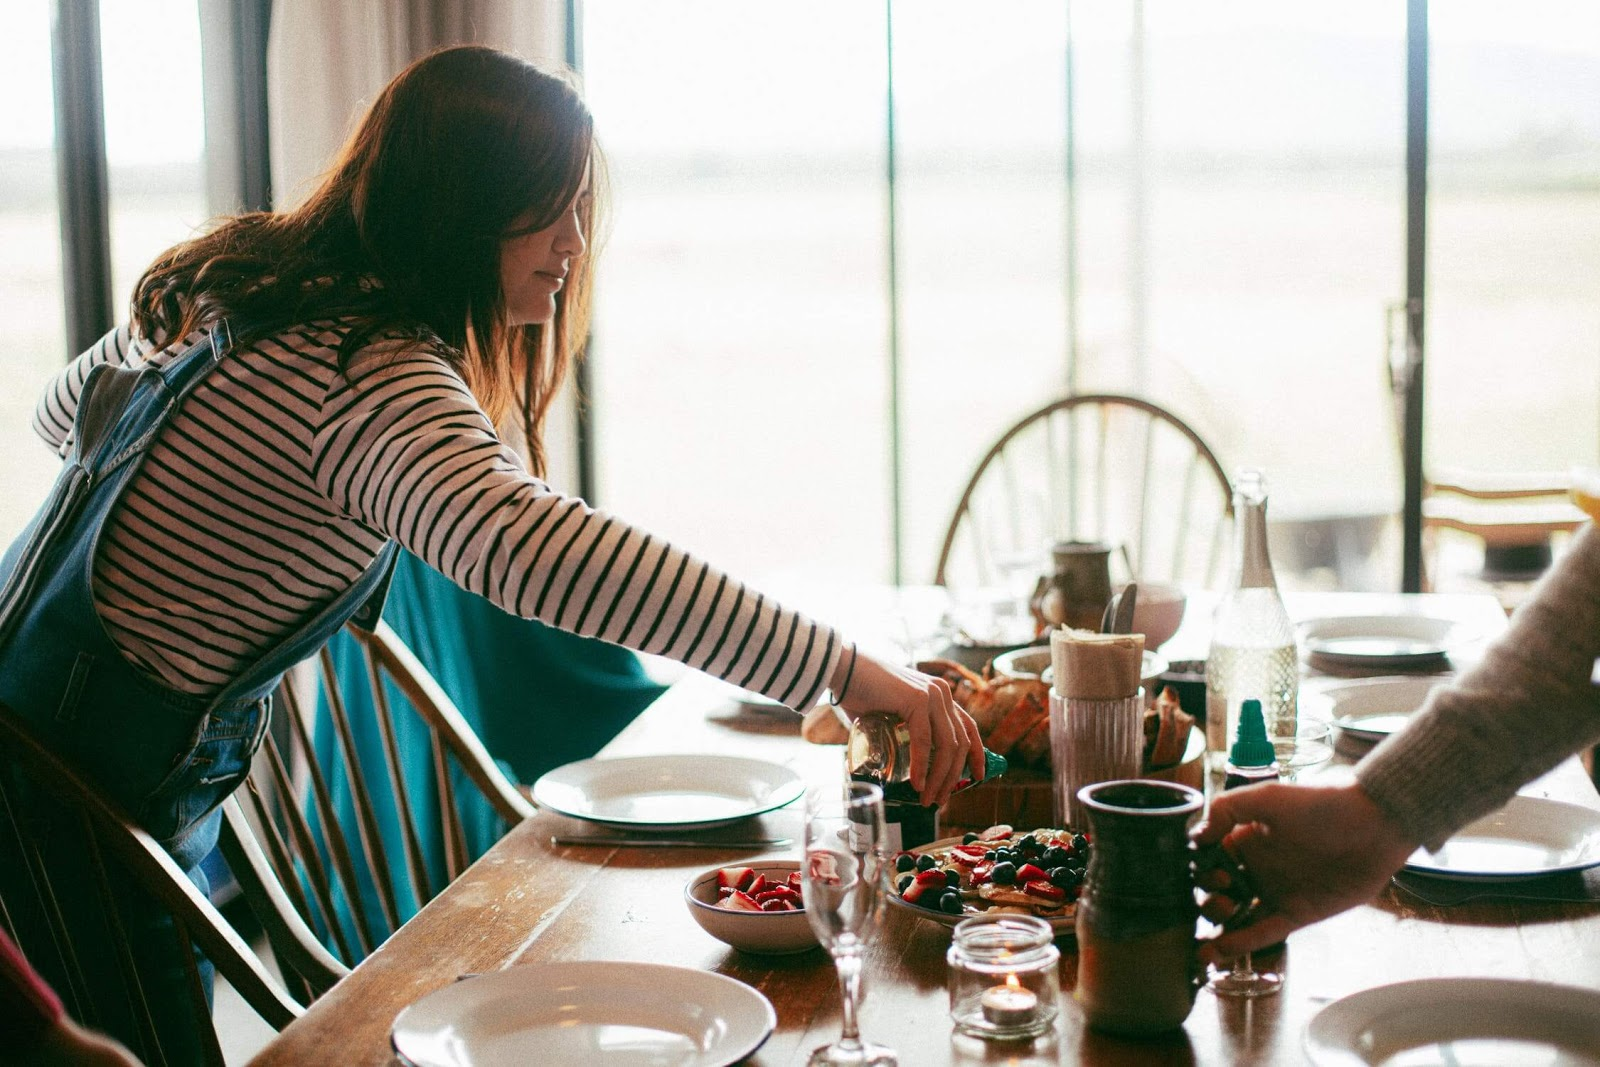 Woman prepares table of food for holiday gathering